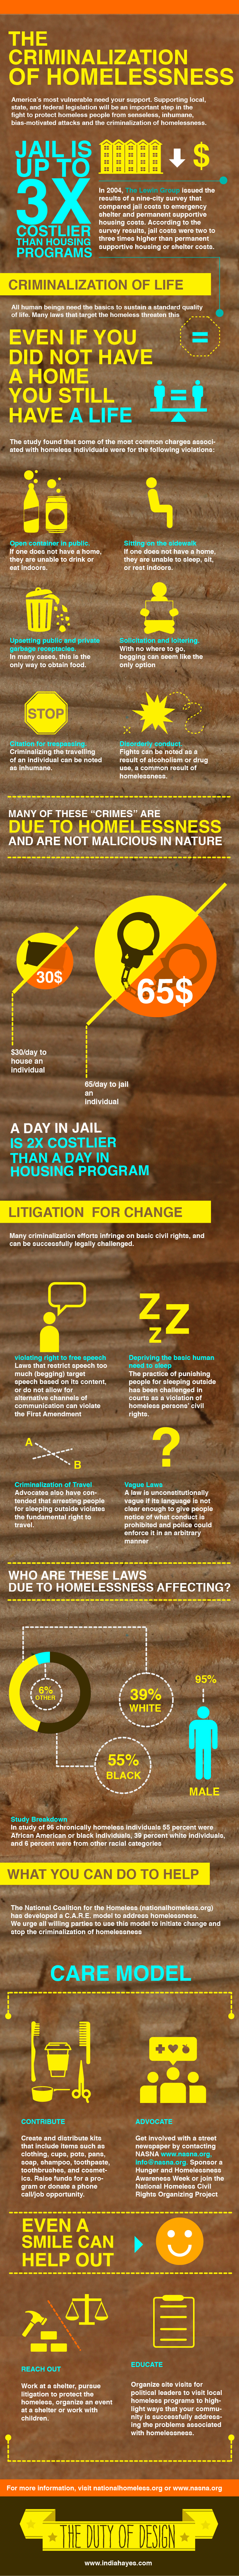 criminalization-of-homelessness-infographic_50d333f034fe4